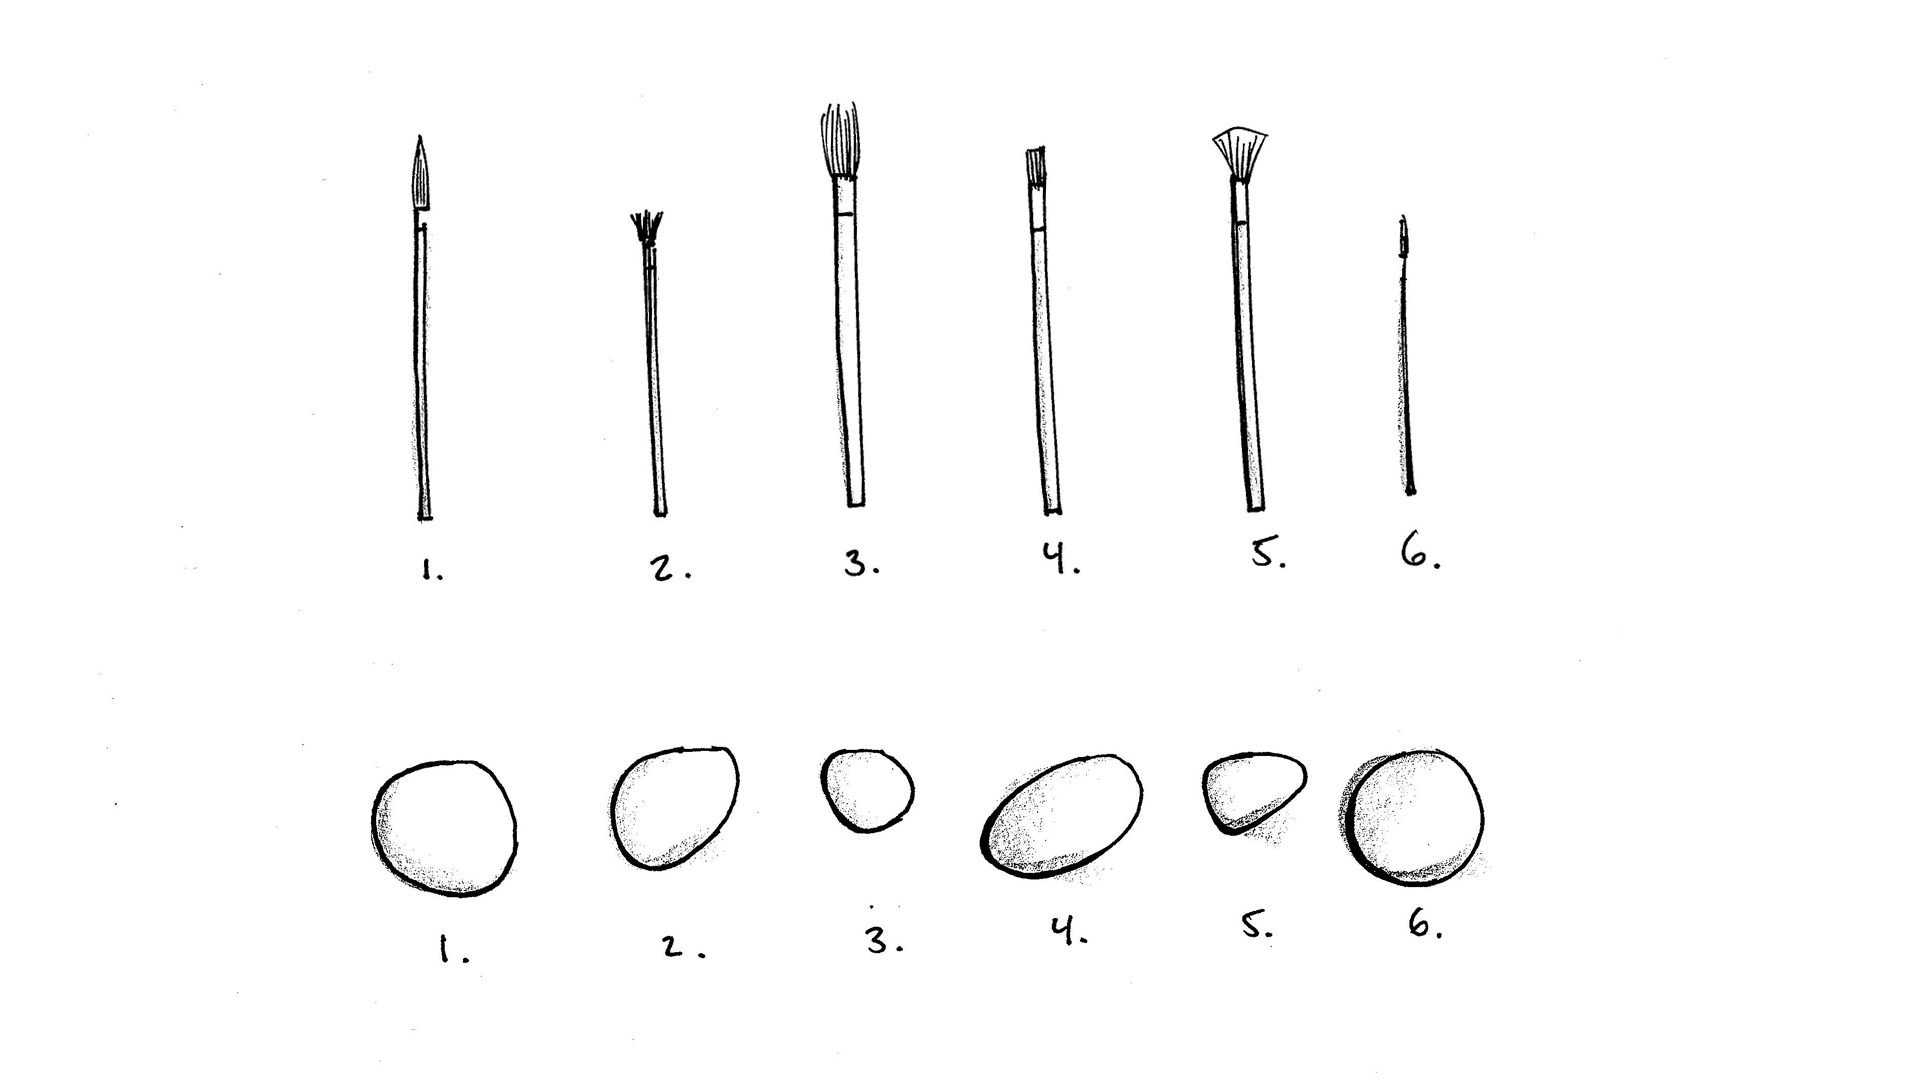 An example of John Cage's numbered brushes and stones